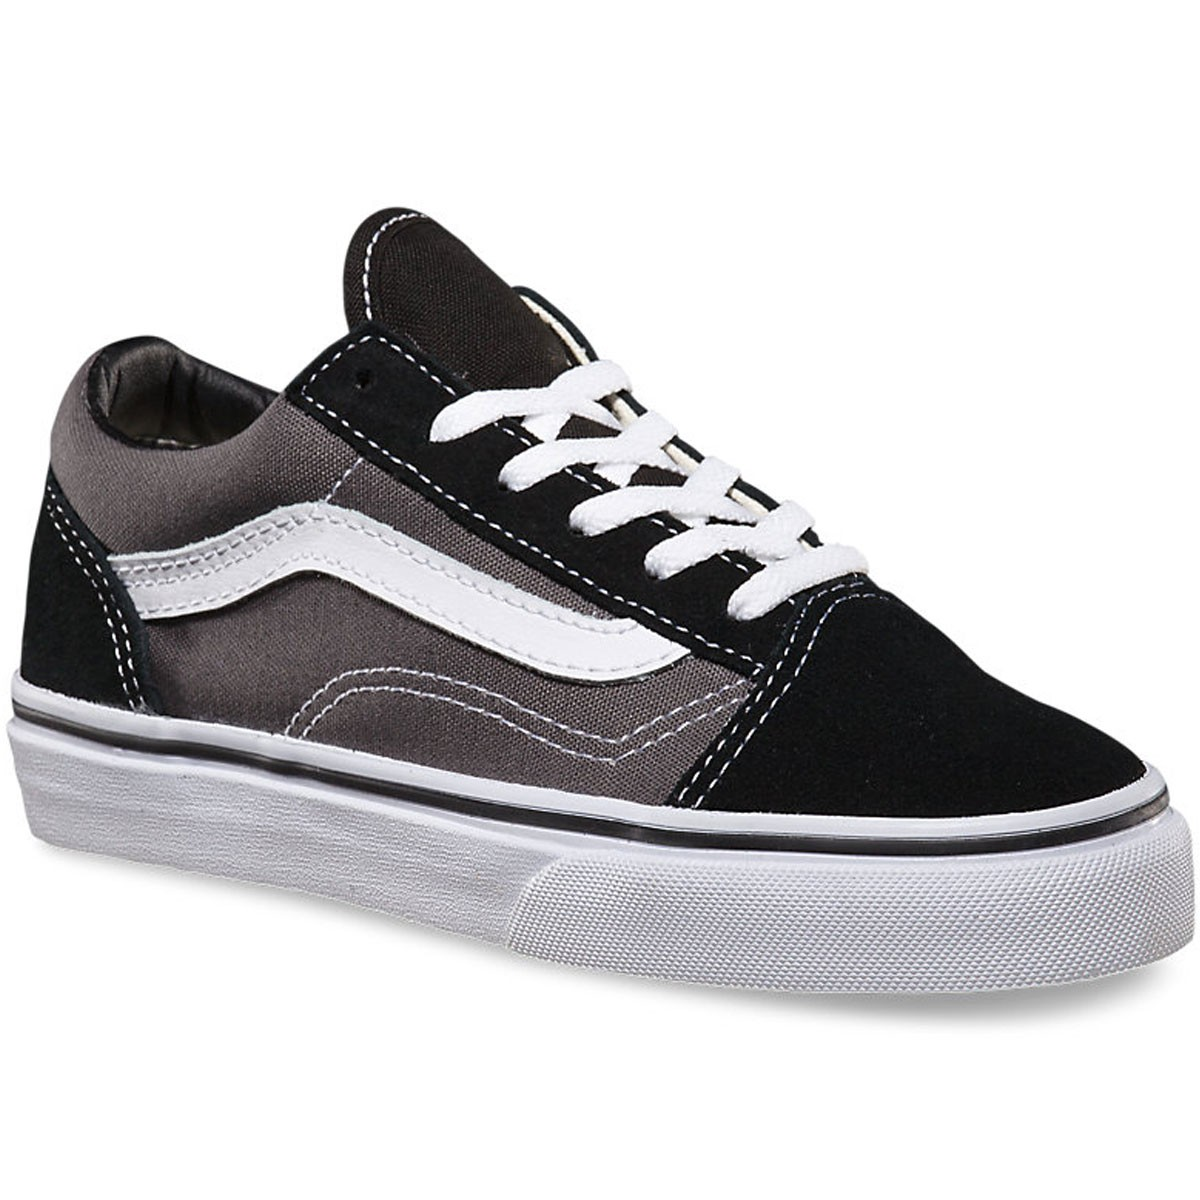 Vans Old Skool Youth Shoes - Black   Pewter 29fc37295